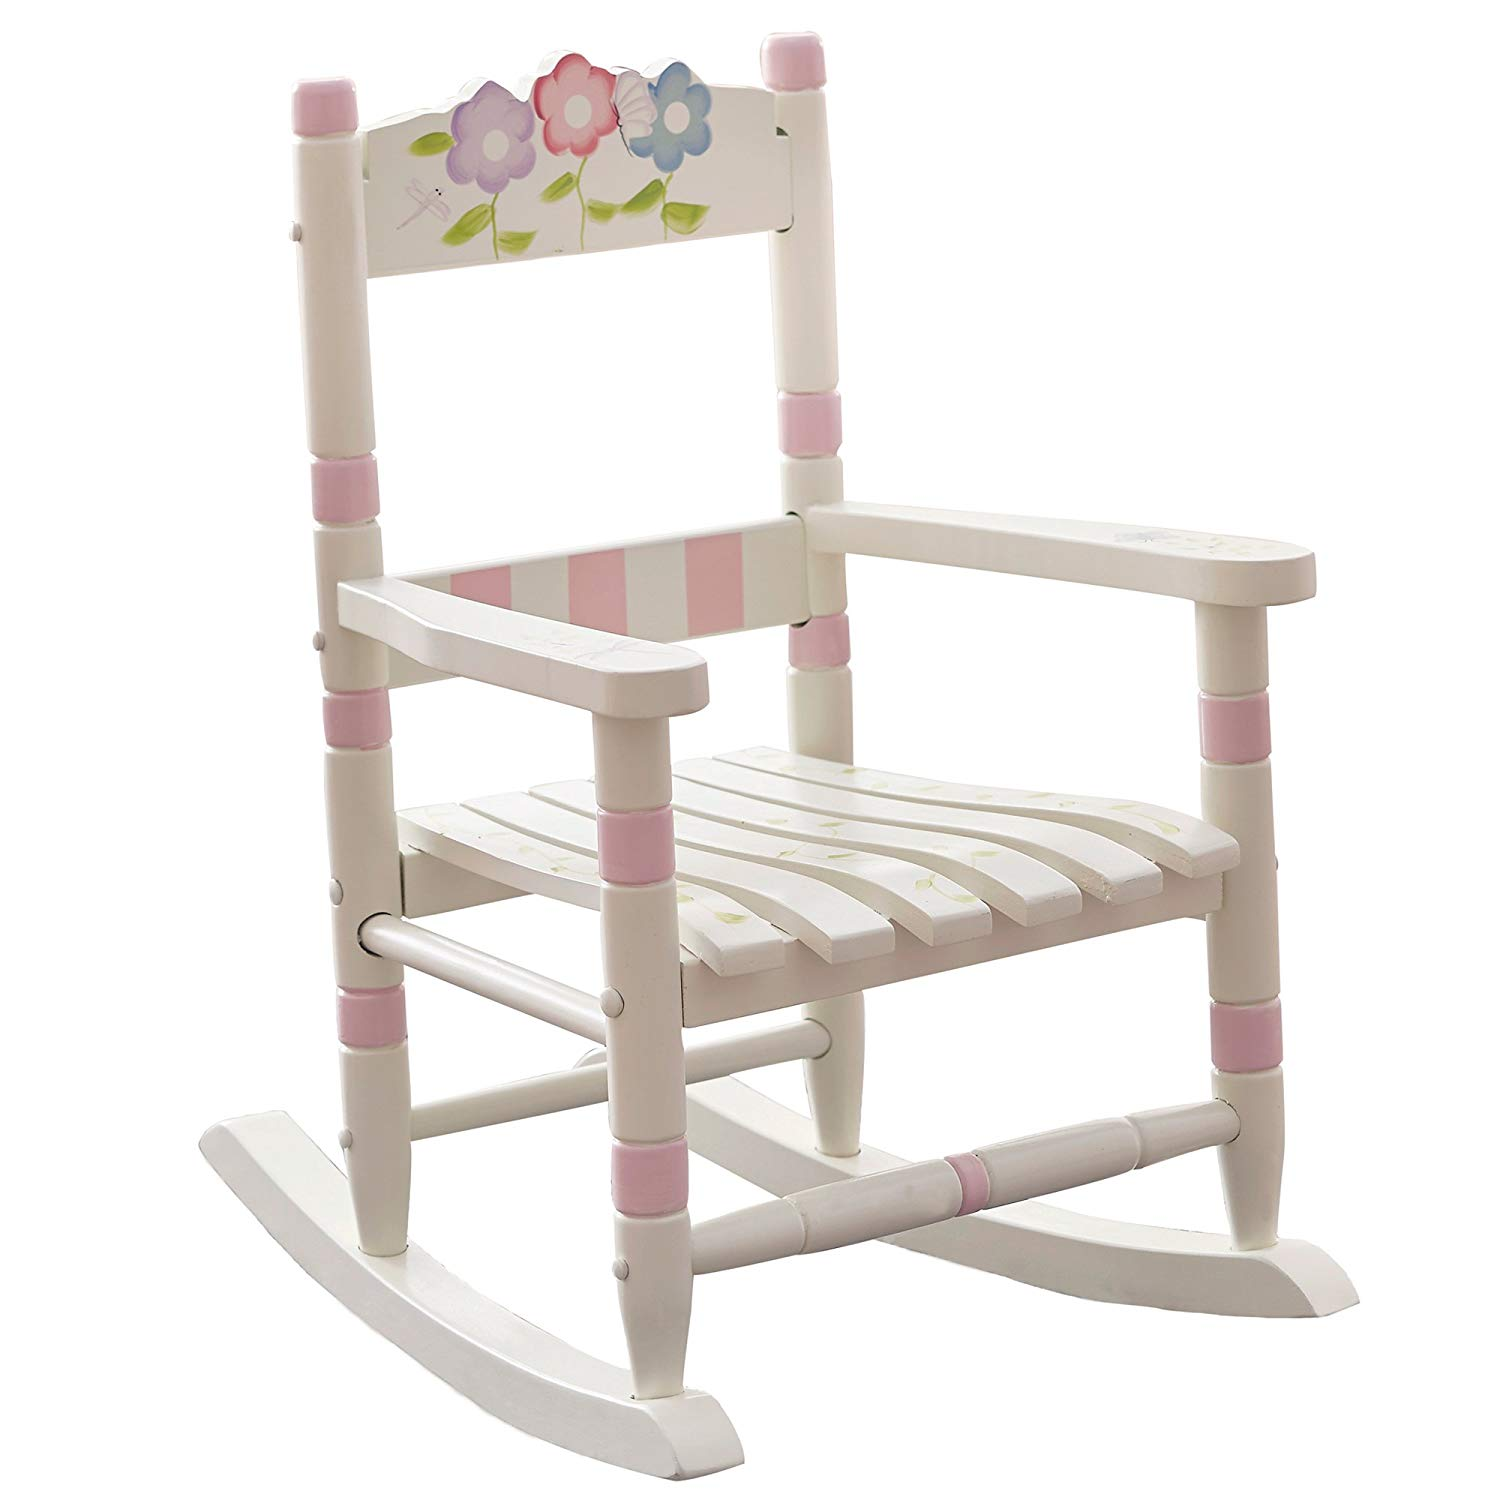 Fantasy Fields - Bouquet Thematic Kids Wooden Rocking Chair Imagination  Inspiring Hand Crafted & Hand Painted Details Non-Toxic, Lead Free  Water-based Paint